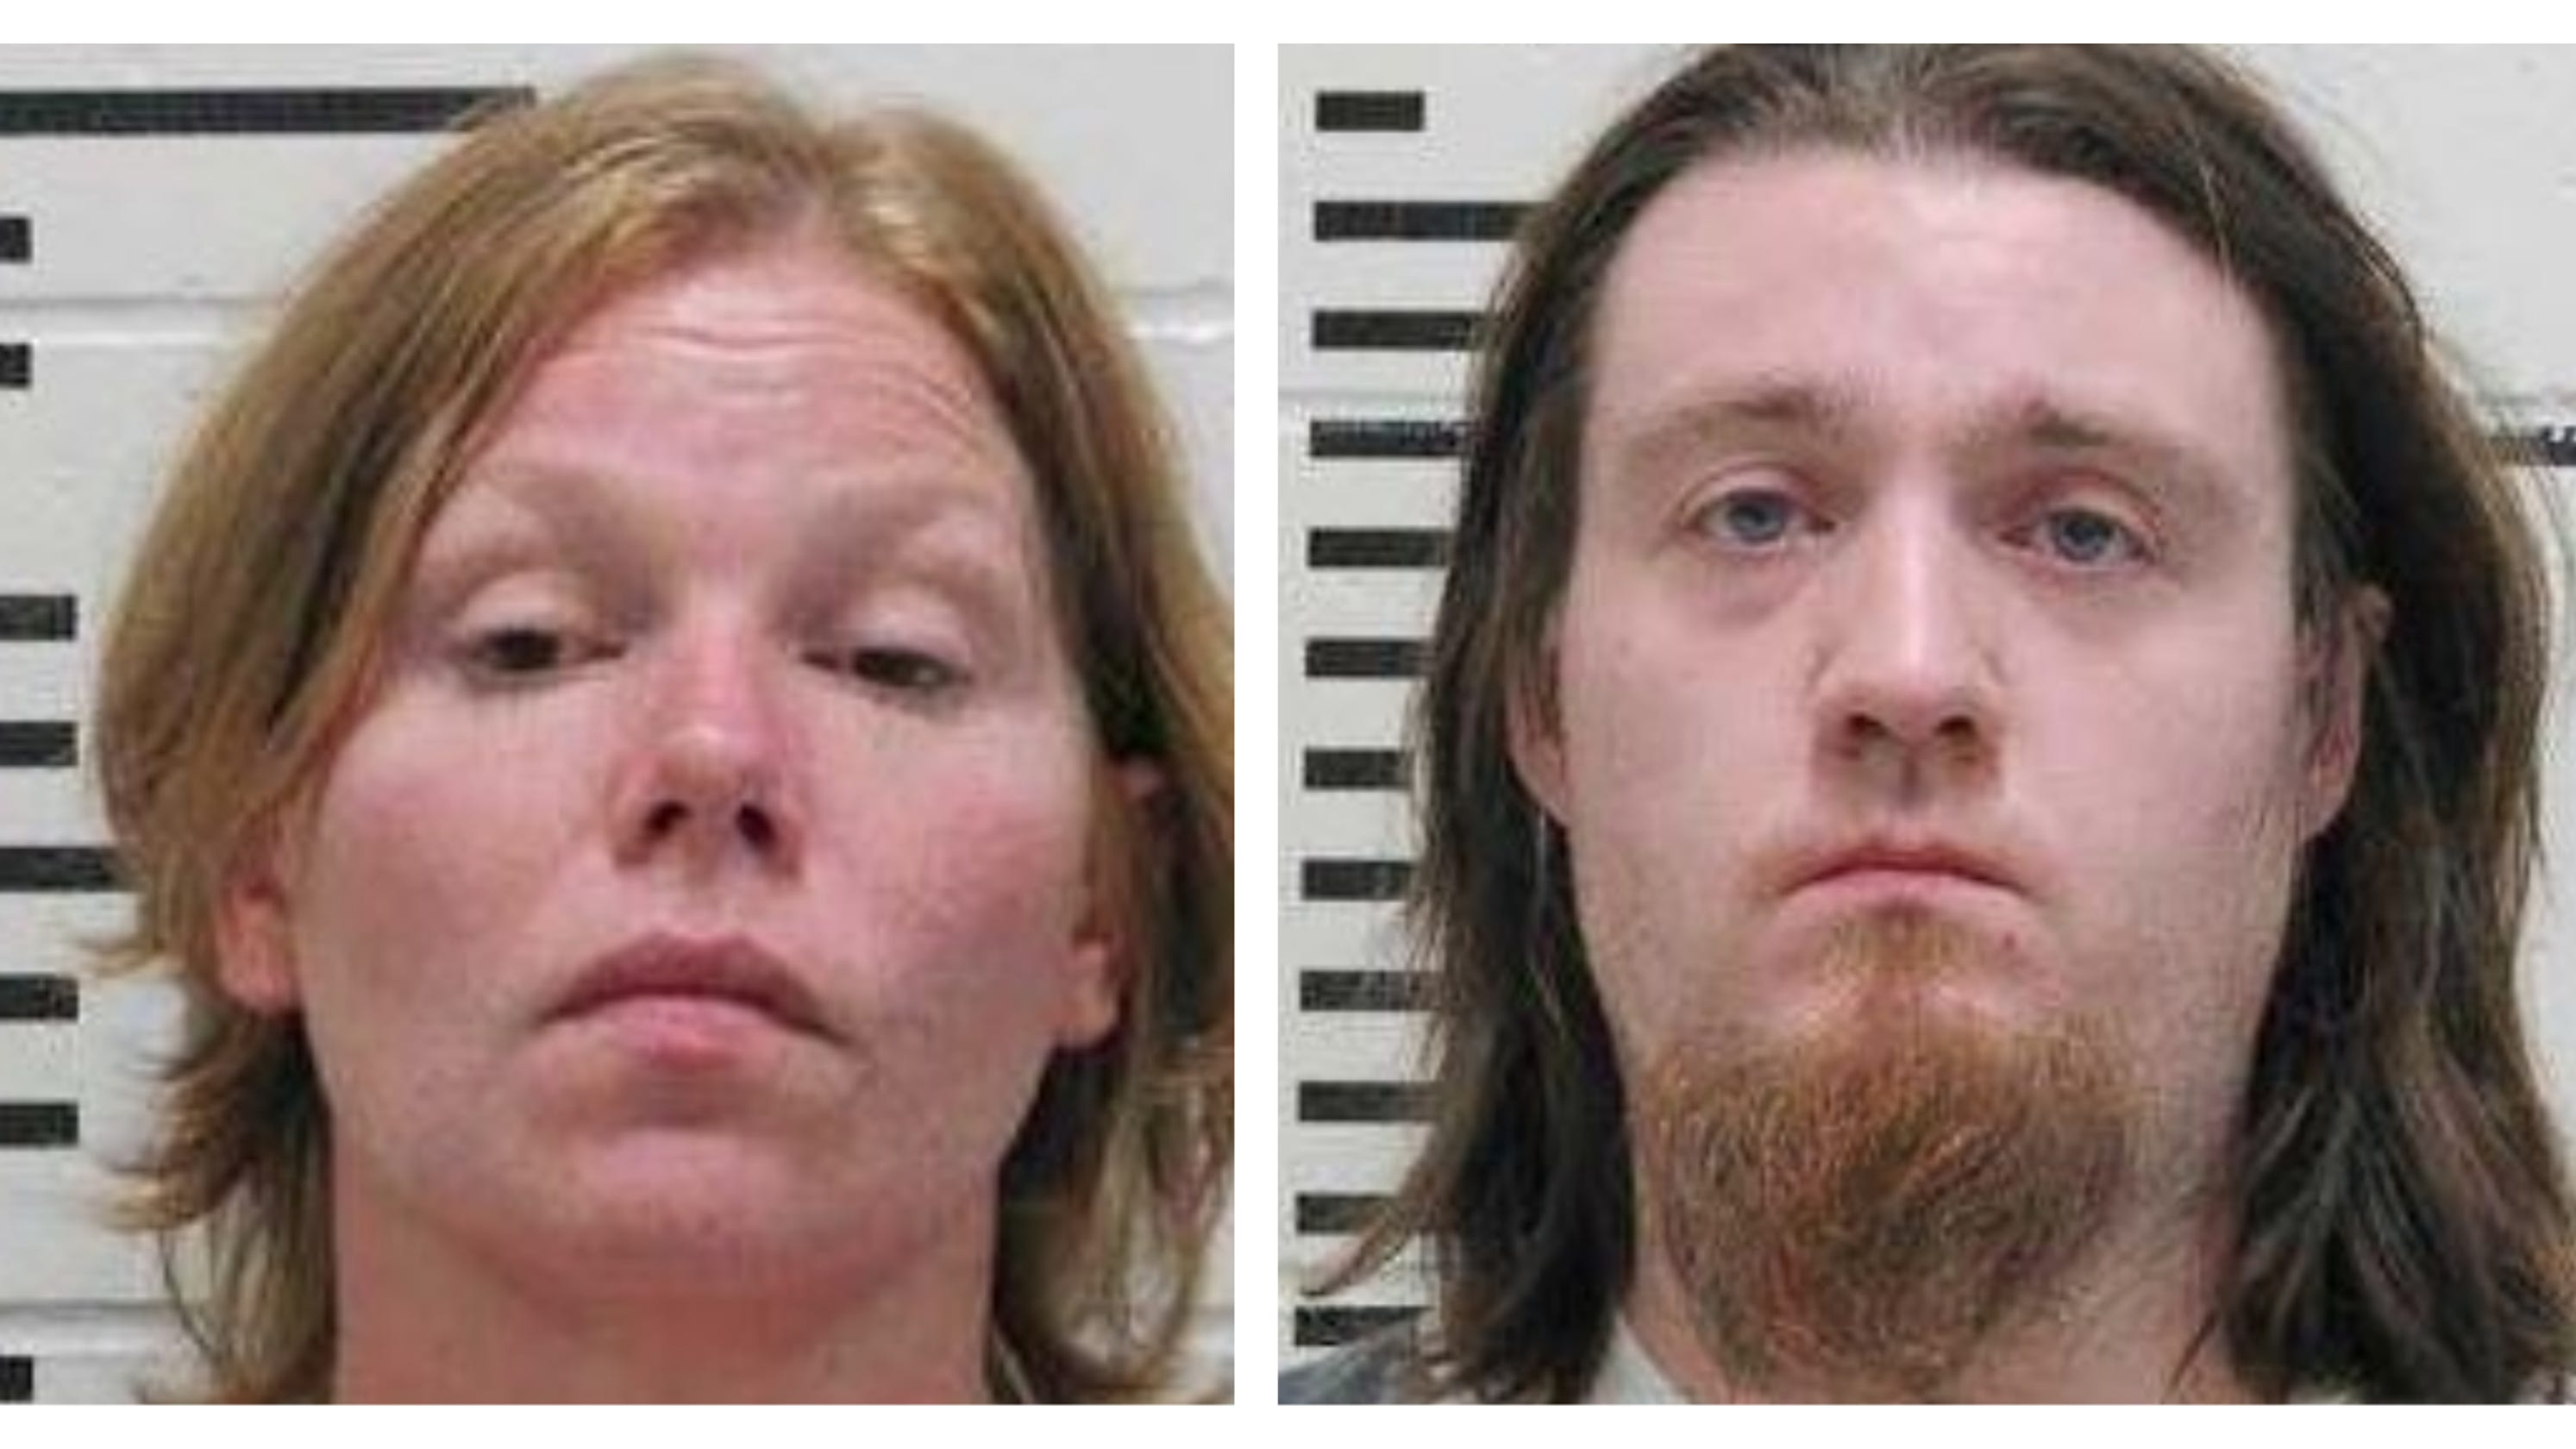 Rural Iowa crime: Two arrested in meth lab bust